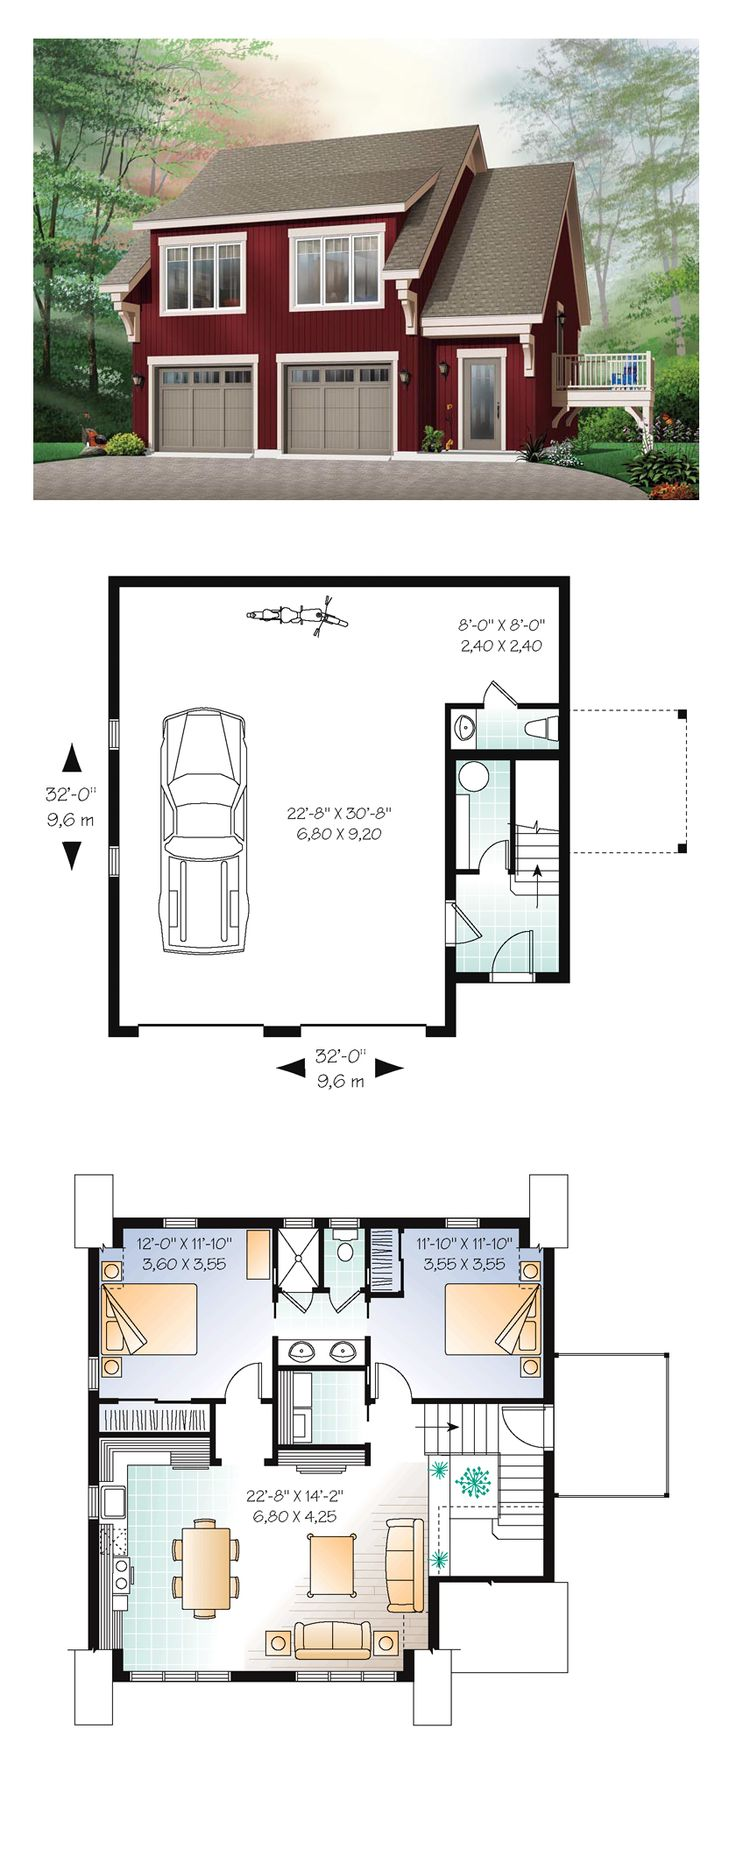 lovely small garage apartment plans #3: Garage Apartment Plan 64817 | Total Living Area: 1068 sq. ft., 2